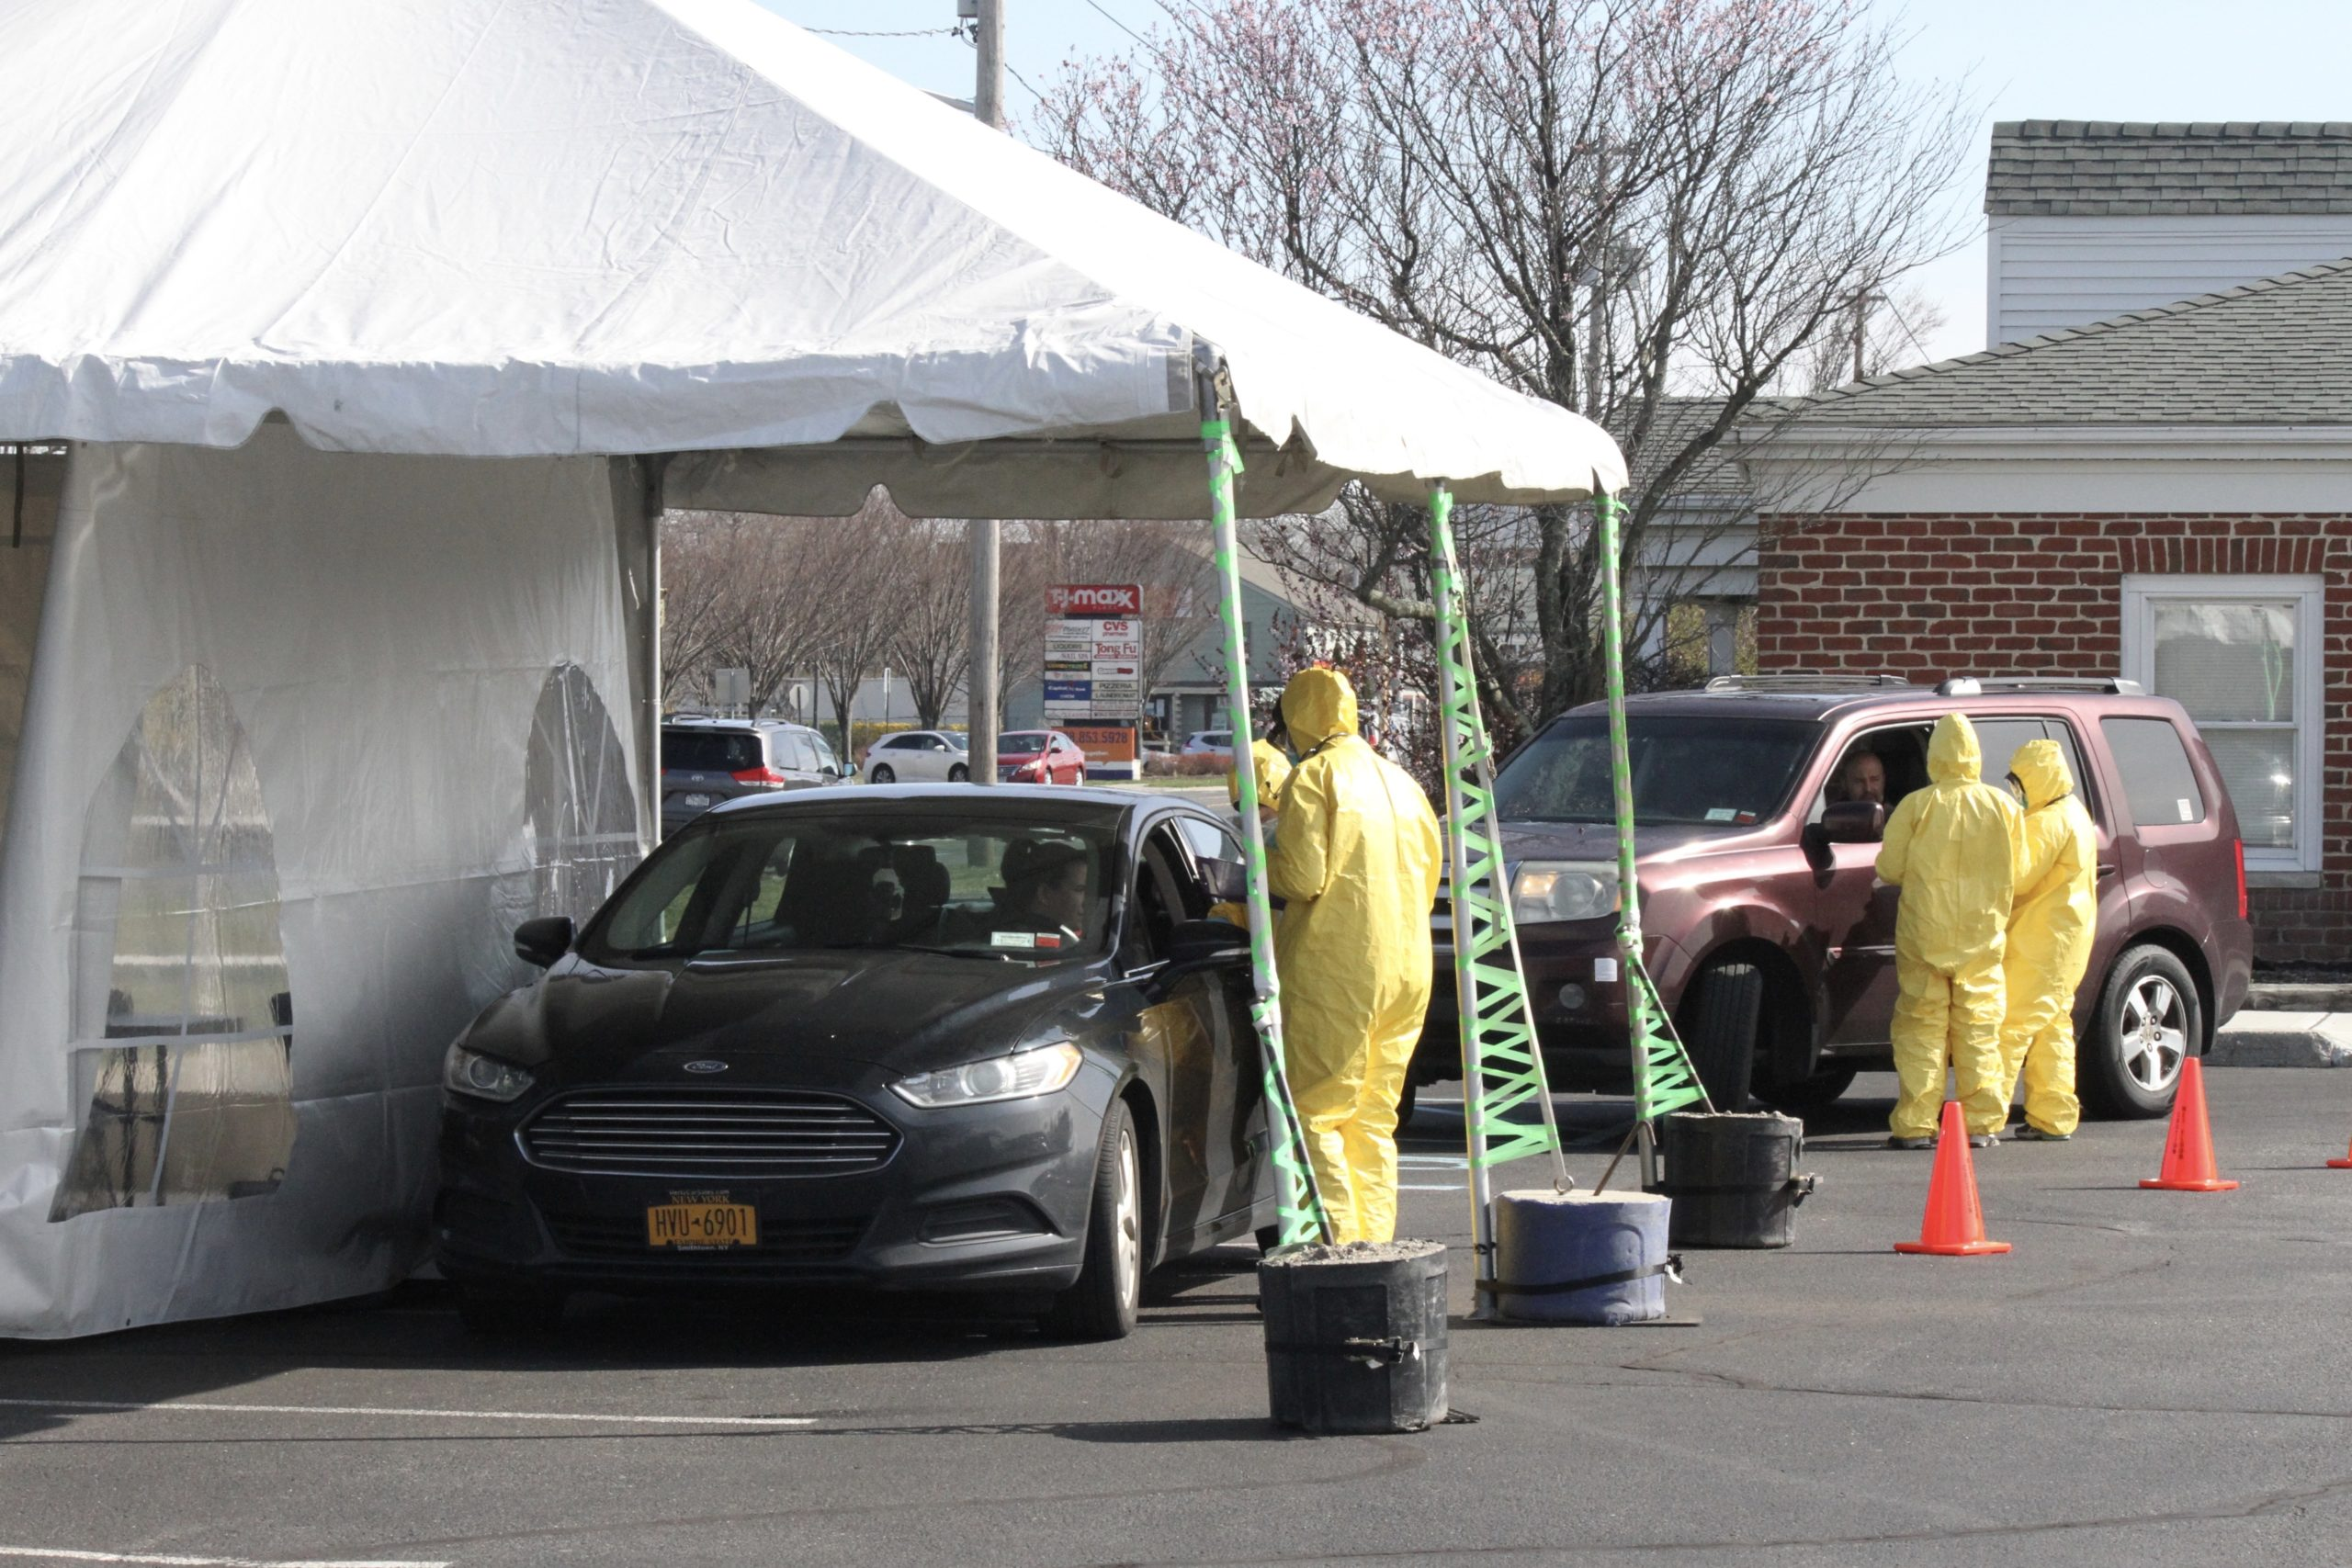 A drive-thru COVID-19 testing site opened at ProHEALTH urgent care clinic in Riverhead on Monday.